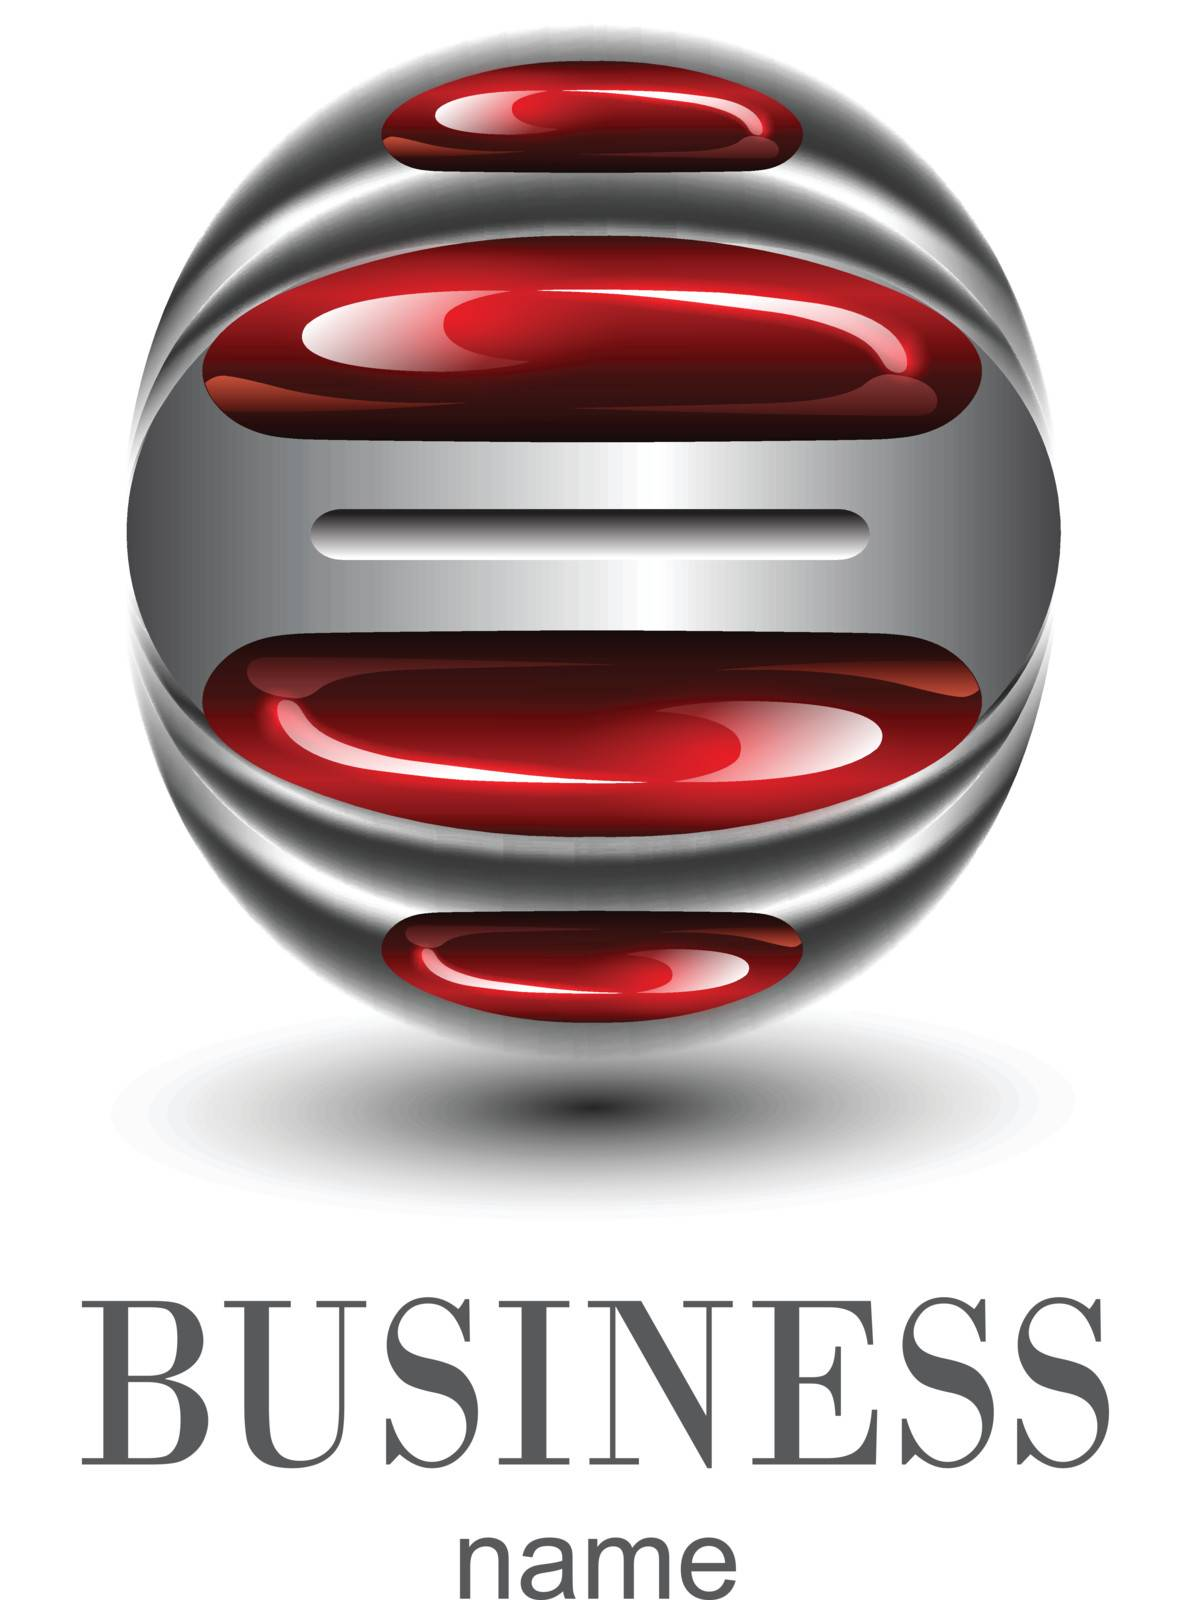 Logo business, red glossy sphere.